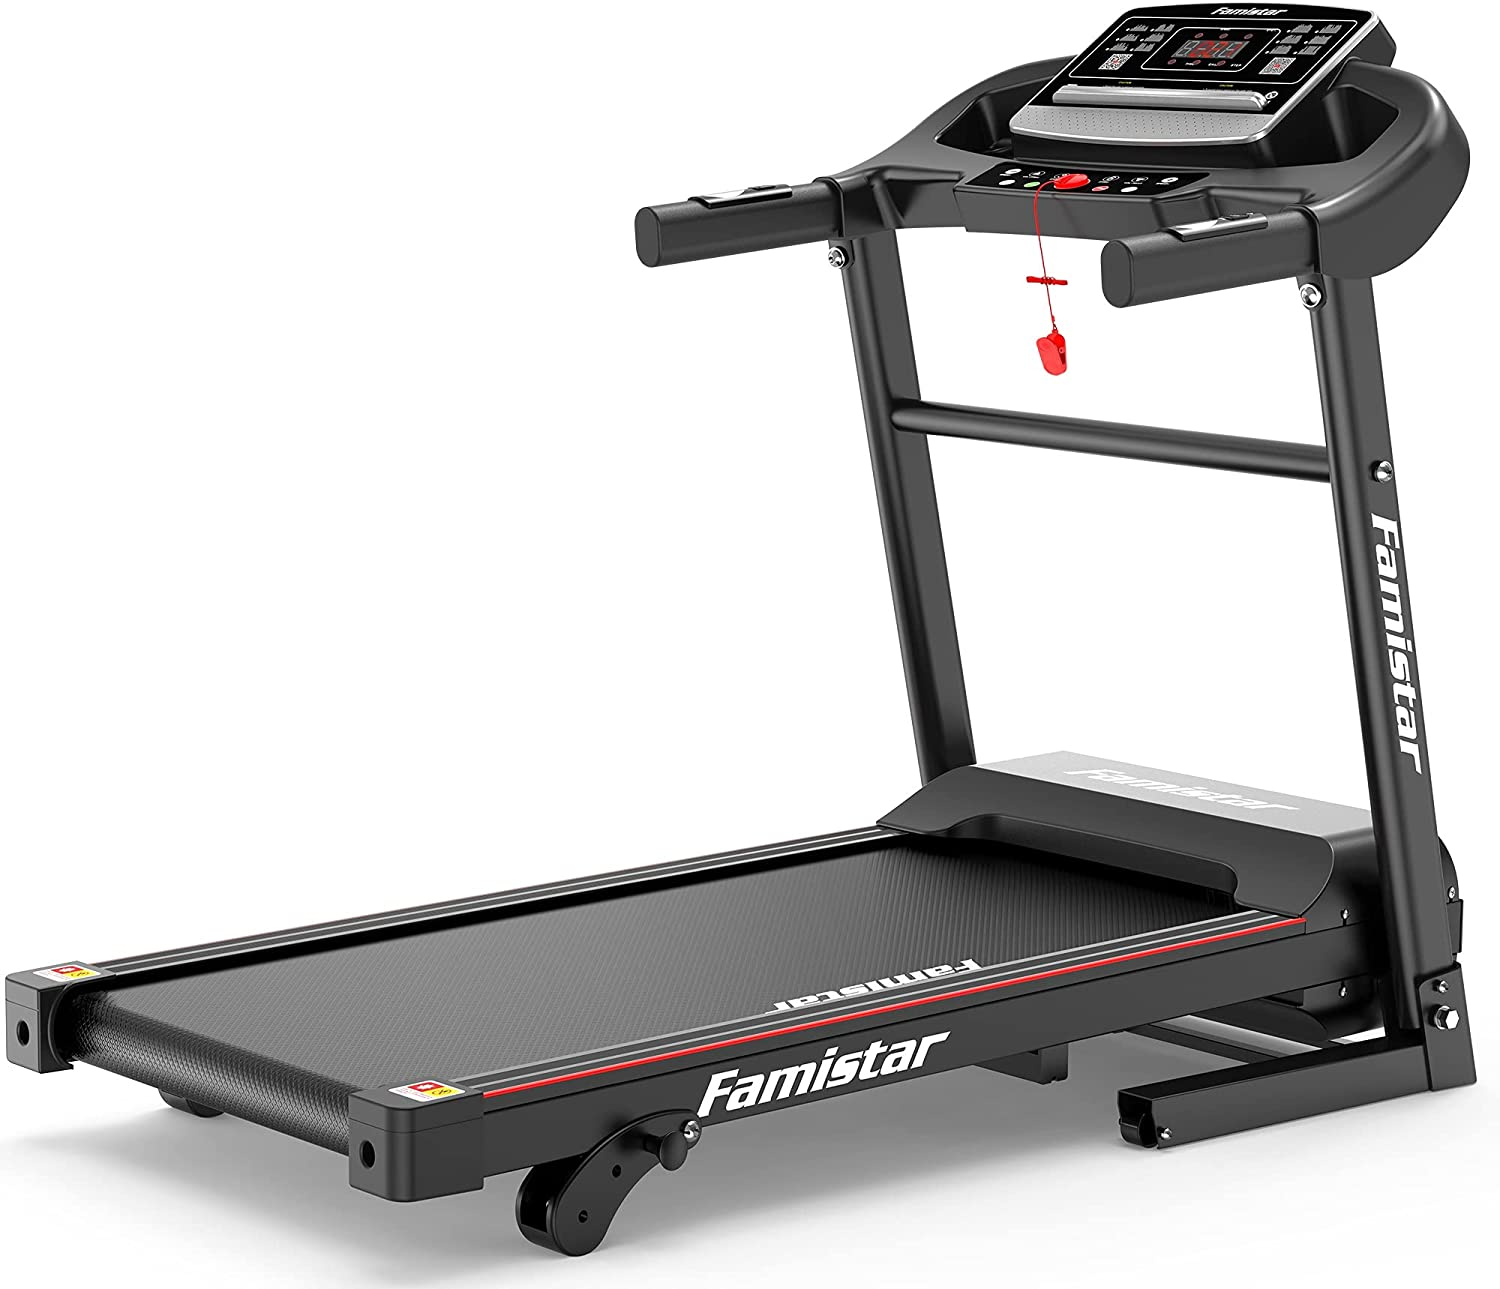 Treadmill with Incline for Home Brand new Topics on TV Electric - Space Famistar Saving